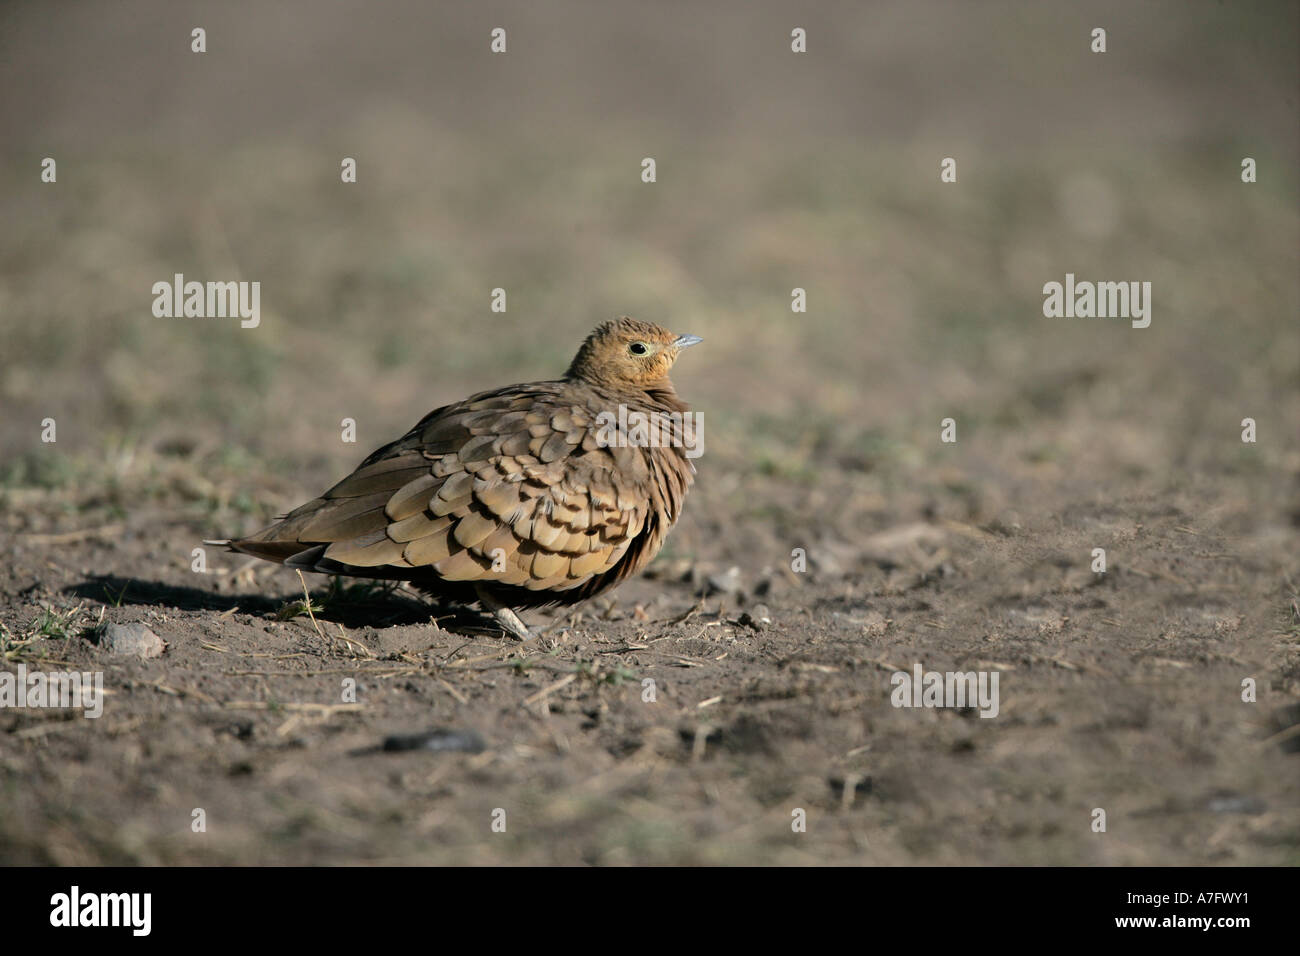 YELLOW THROATED SANDGROUSE Pterocles gutturalis  Tanzania Stock Photo